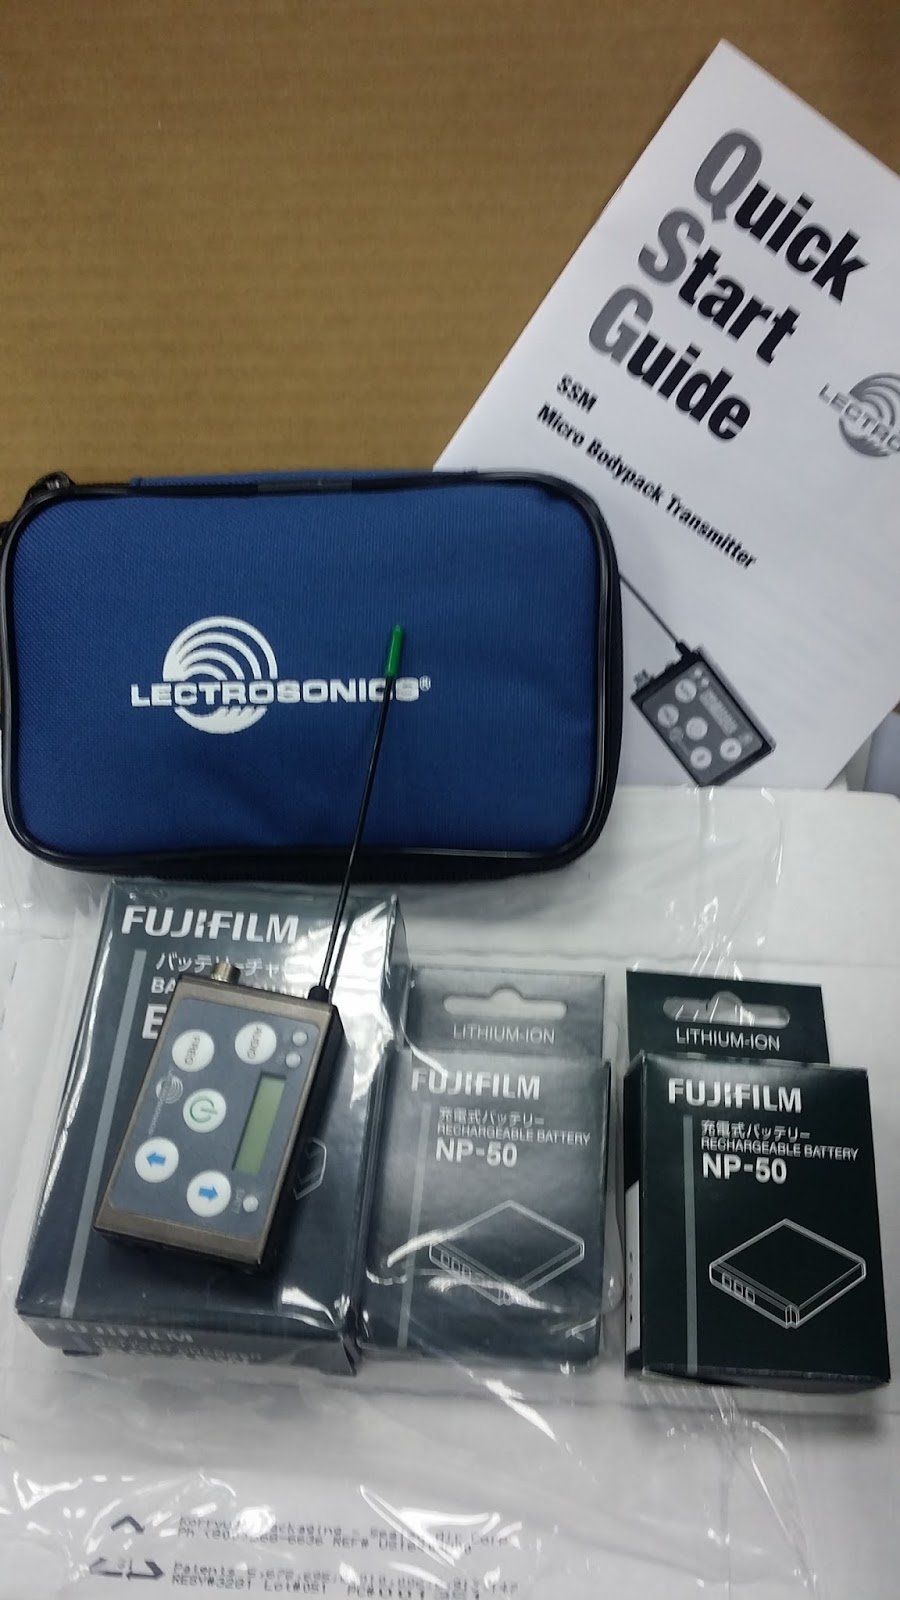 Audiobridge Audio Equipment Distributor 2015 Microphone Preamplifier With Ssm Lectrosonics Micro Transmitters Have Arrived